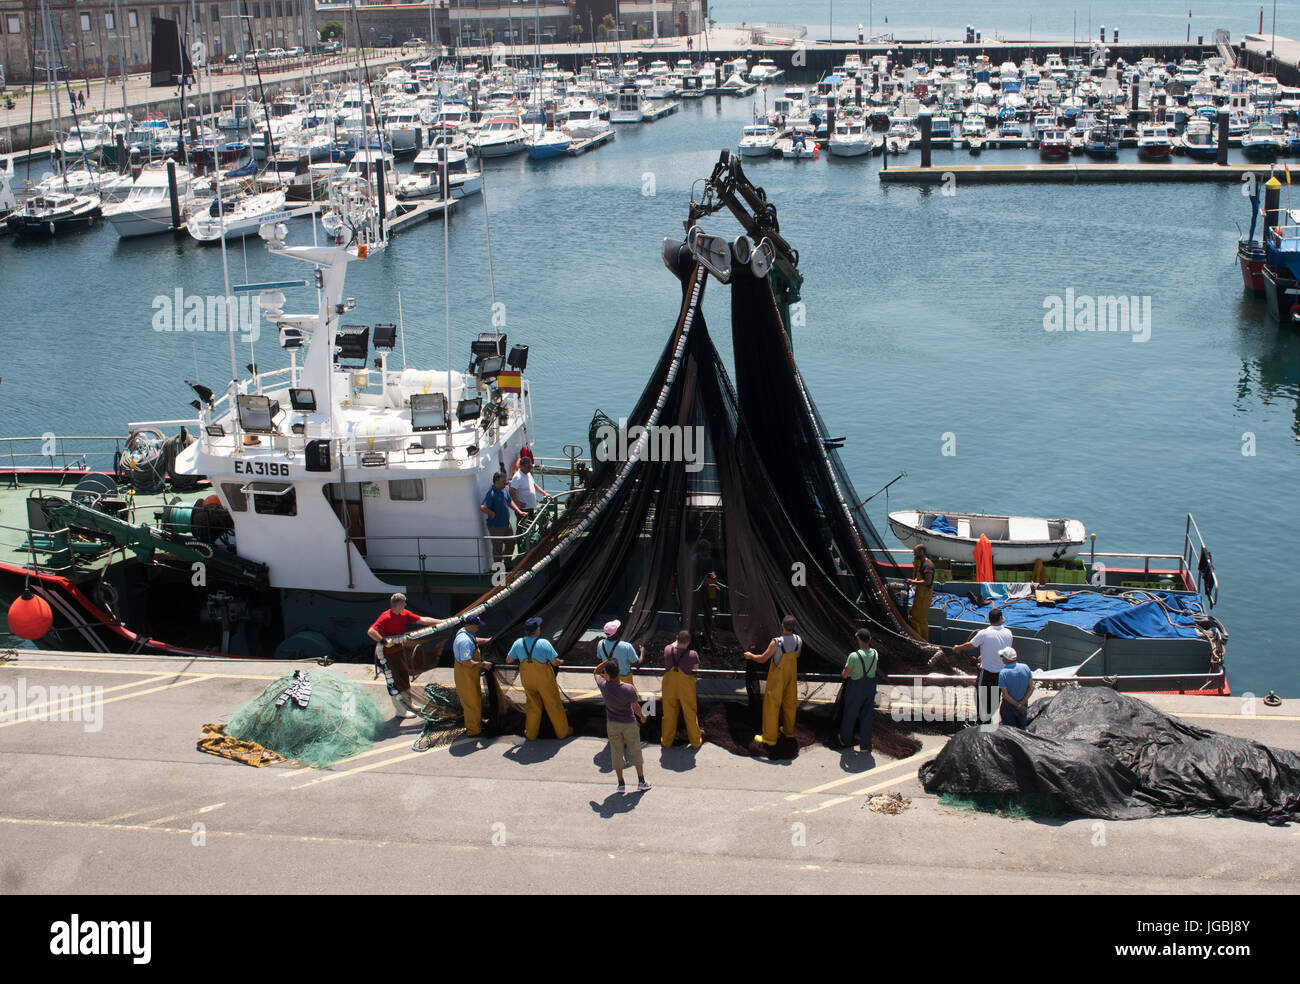 Fishermen inspecting nets on fishing boat in Santoña harbour, Cantabria, Spain - Stock Image